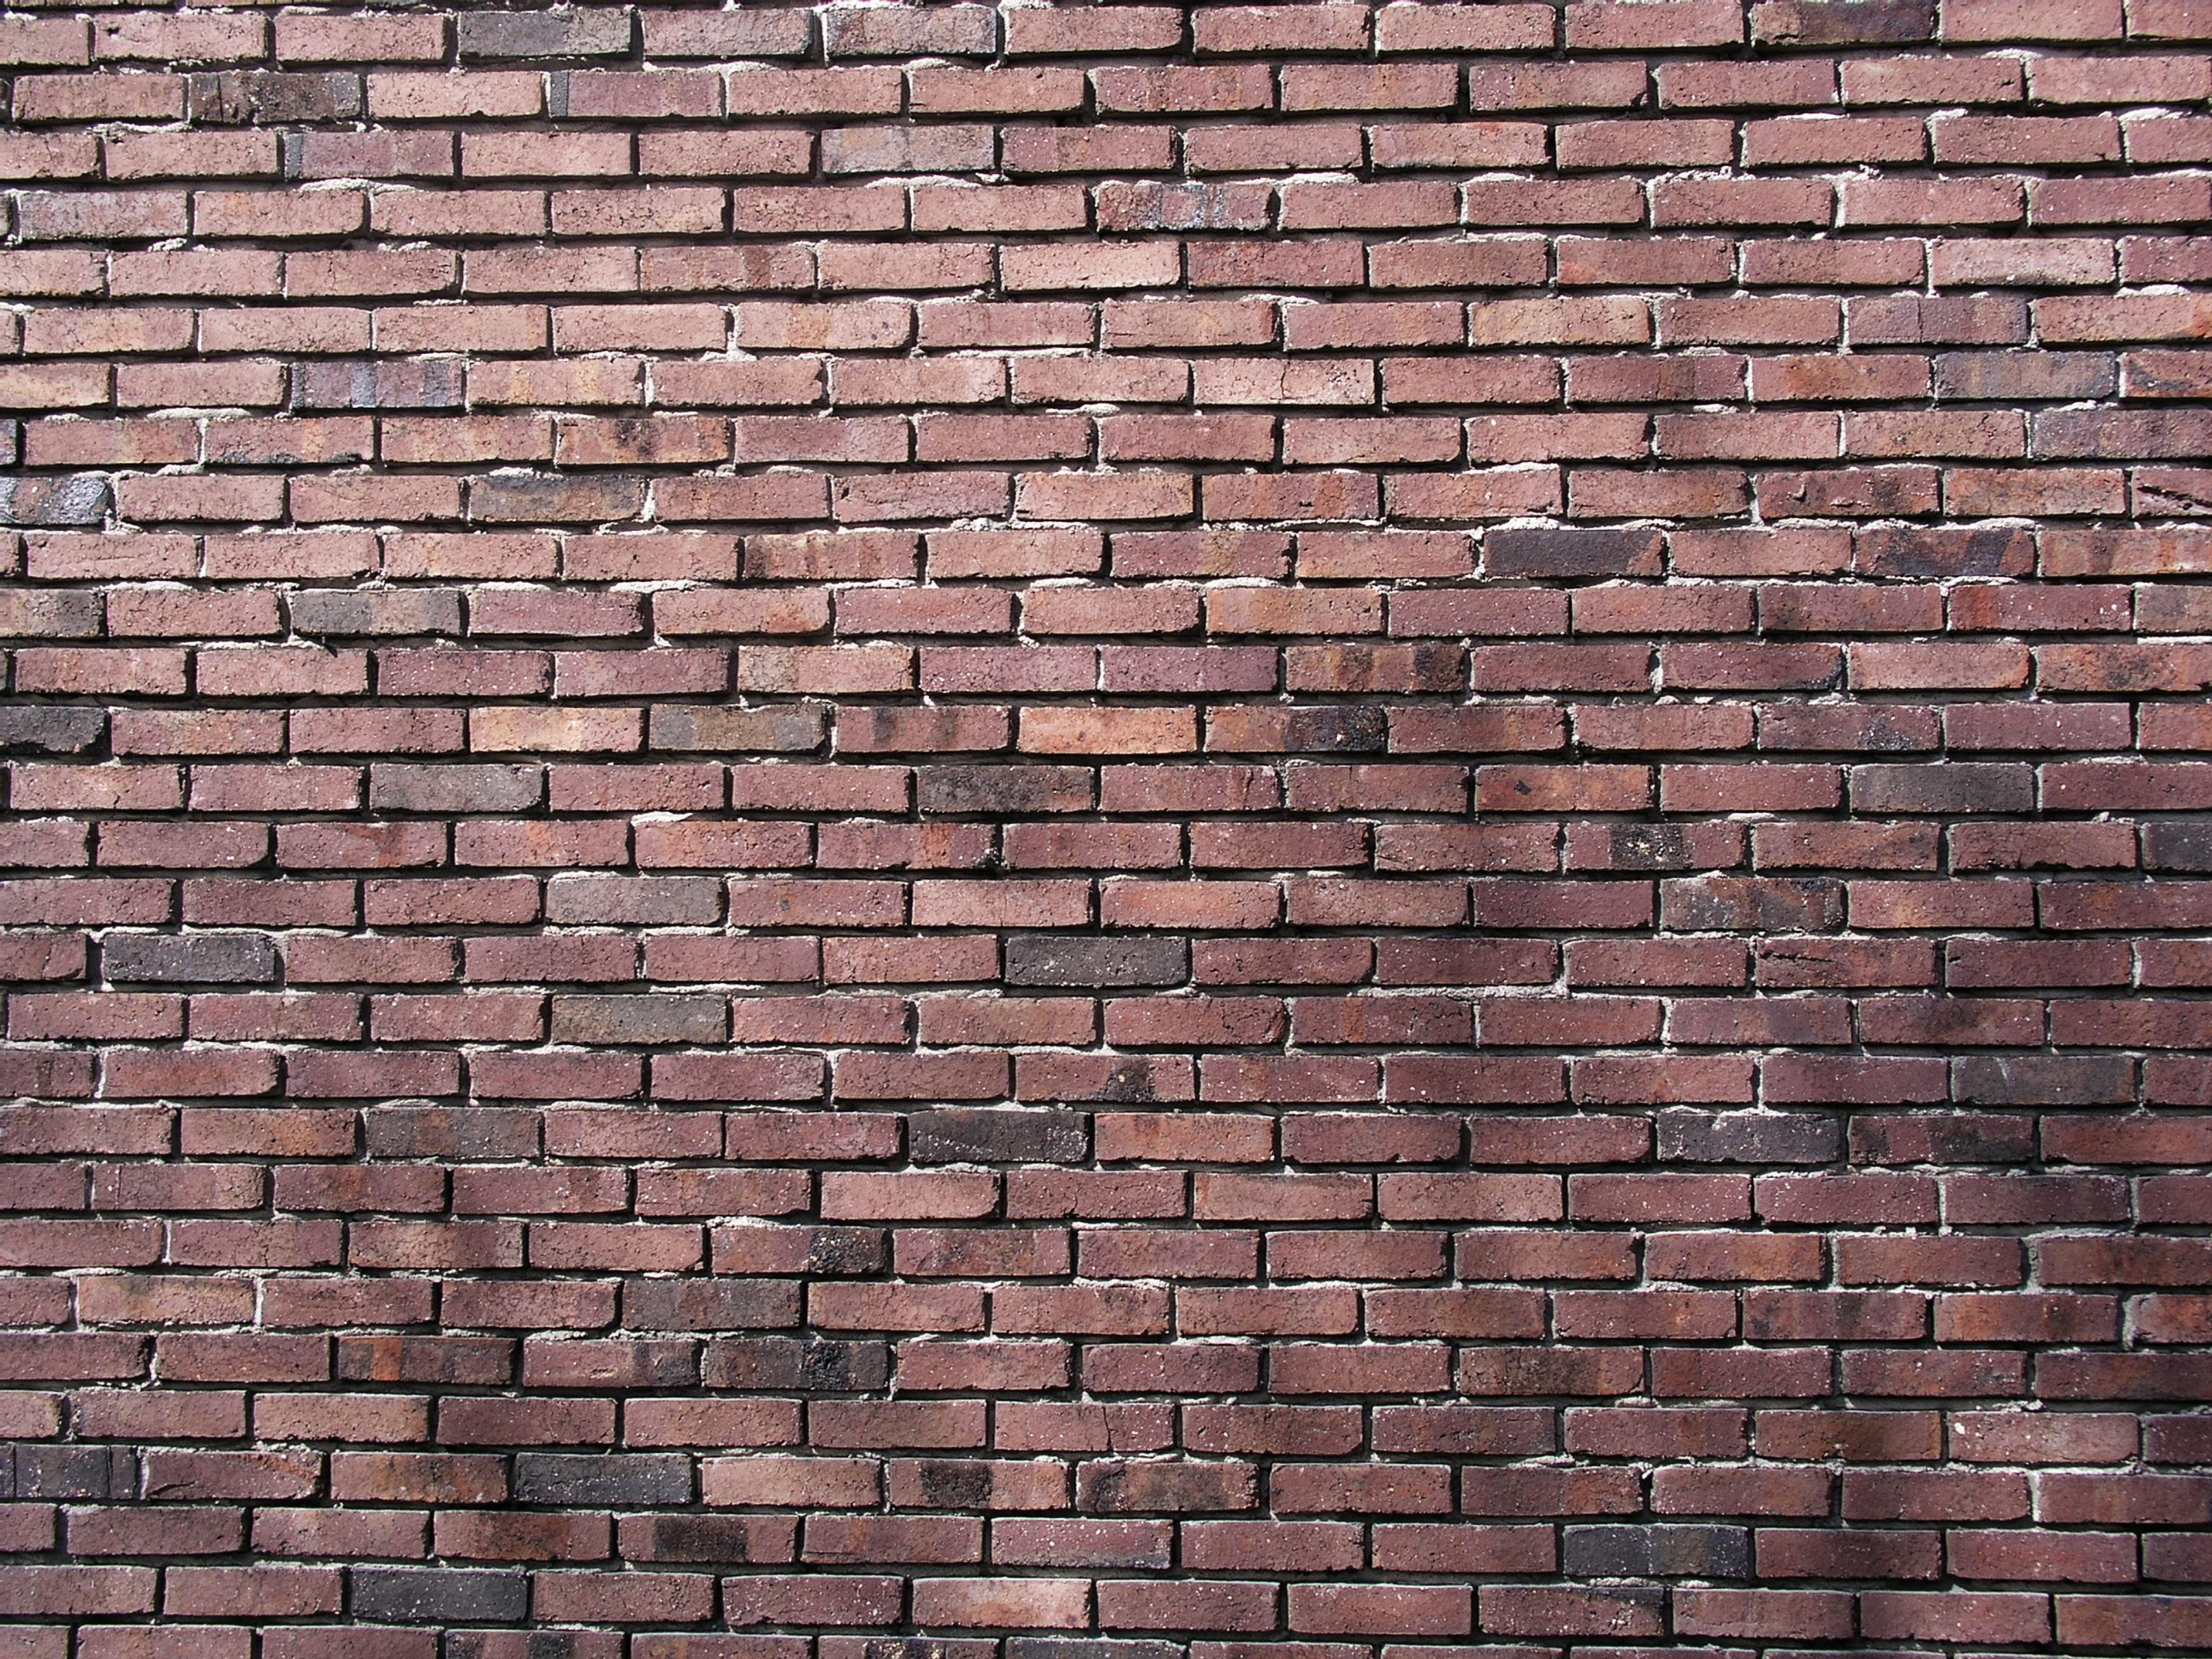 Android Wallpaper: Another Brick in the Wall